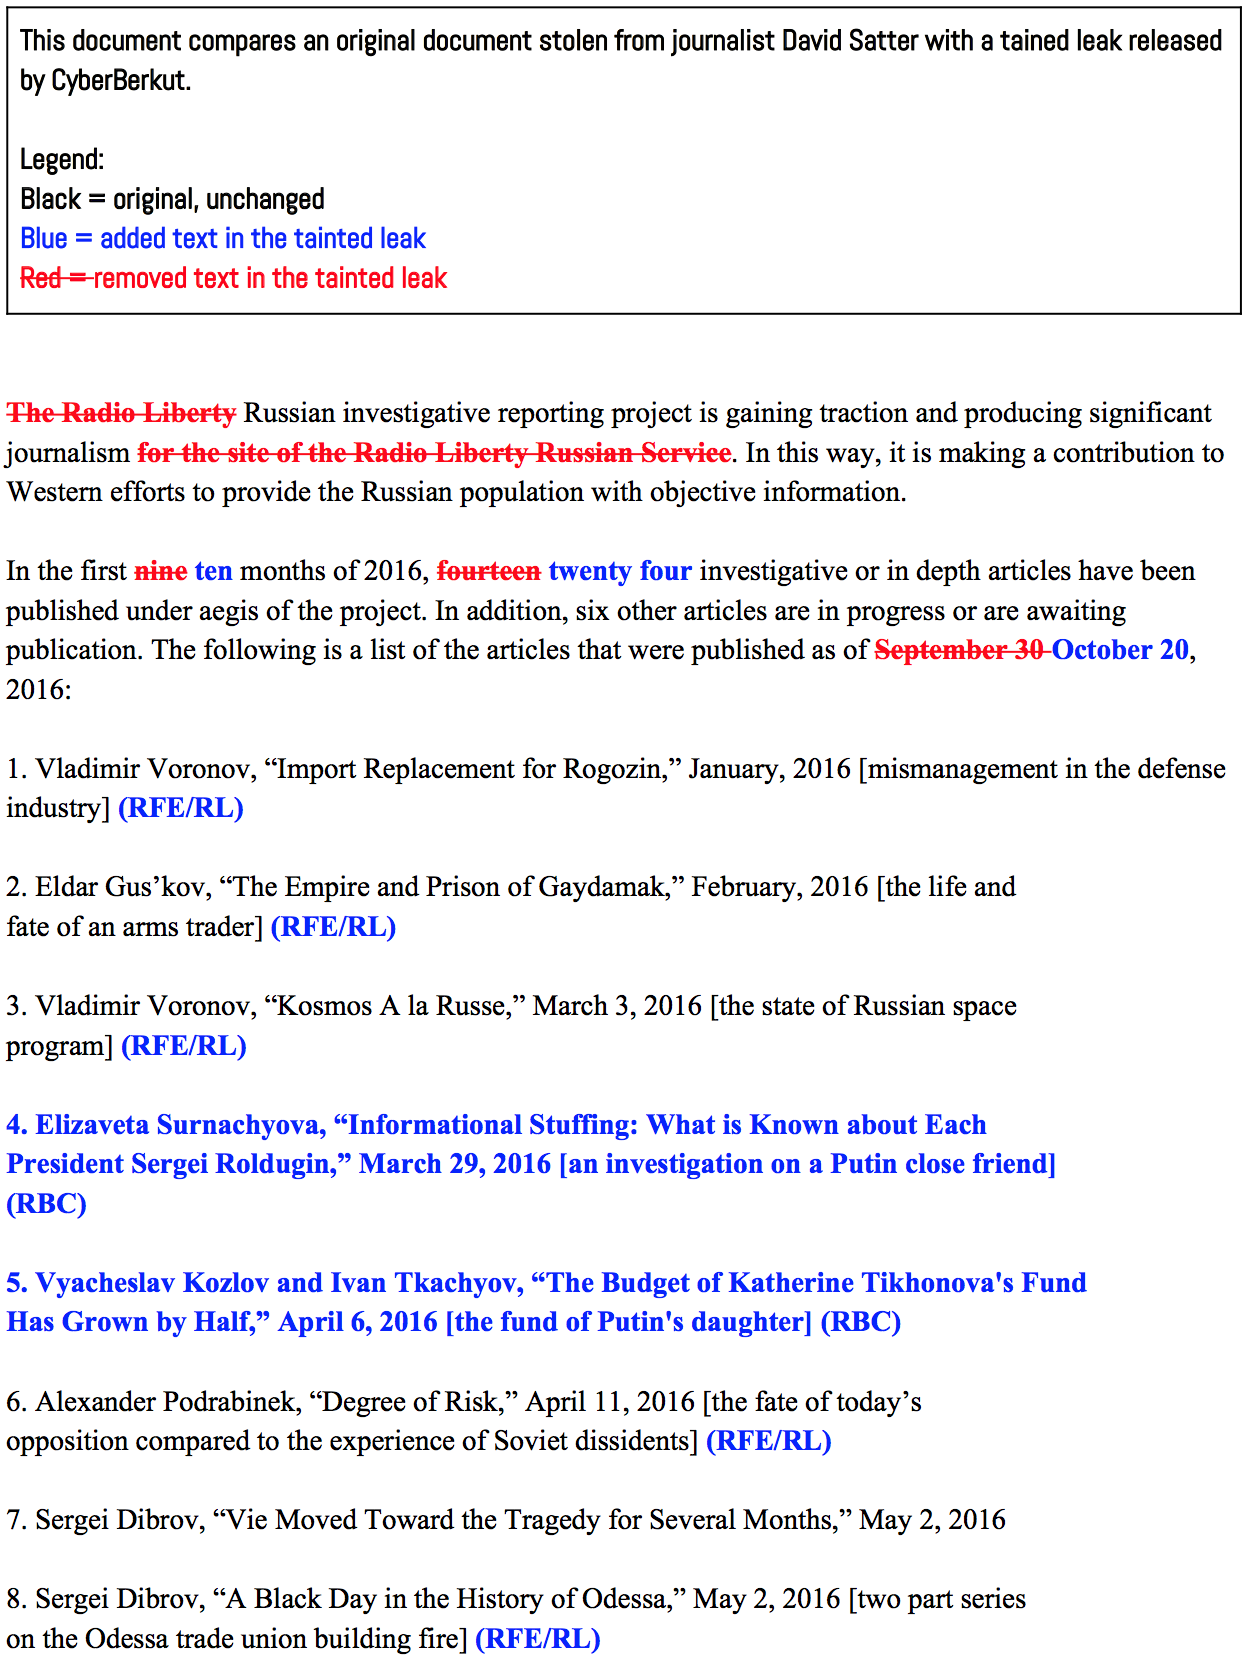 Figure 28 A: Full text of the tainted leak released by CyberBerkut showing tainting